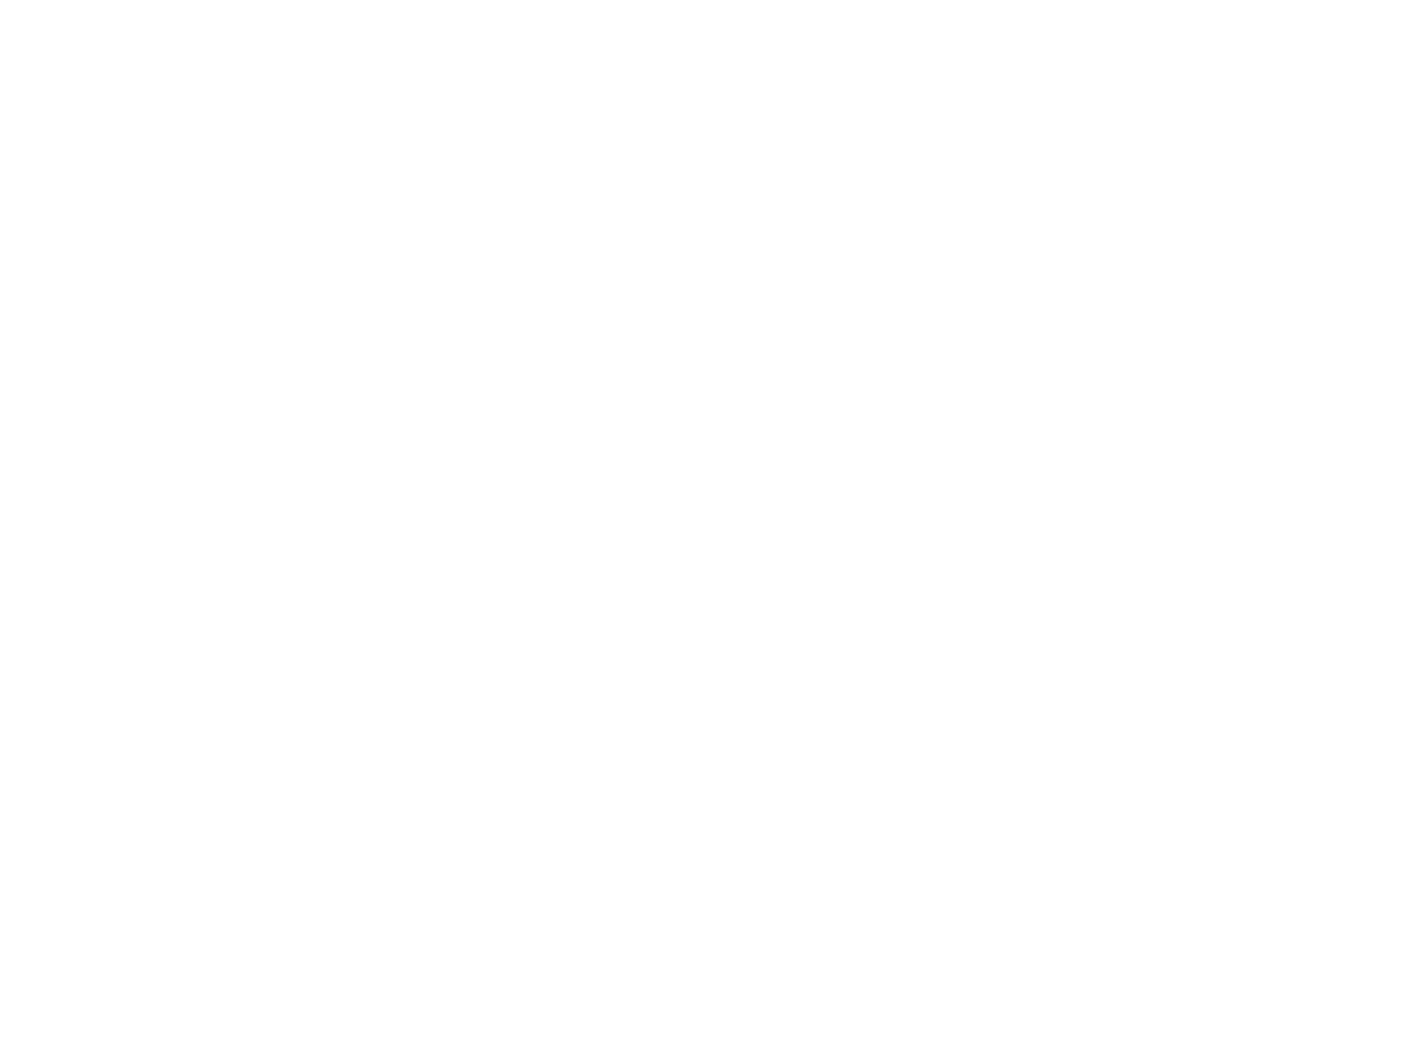 Hand Transport - Hand Route